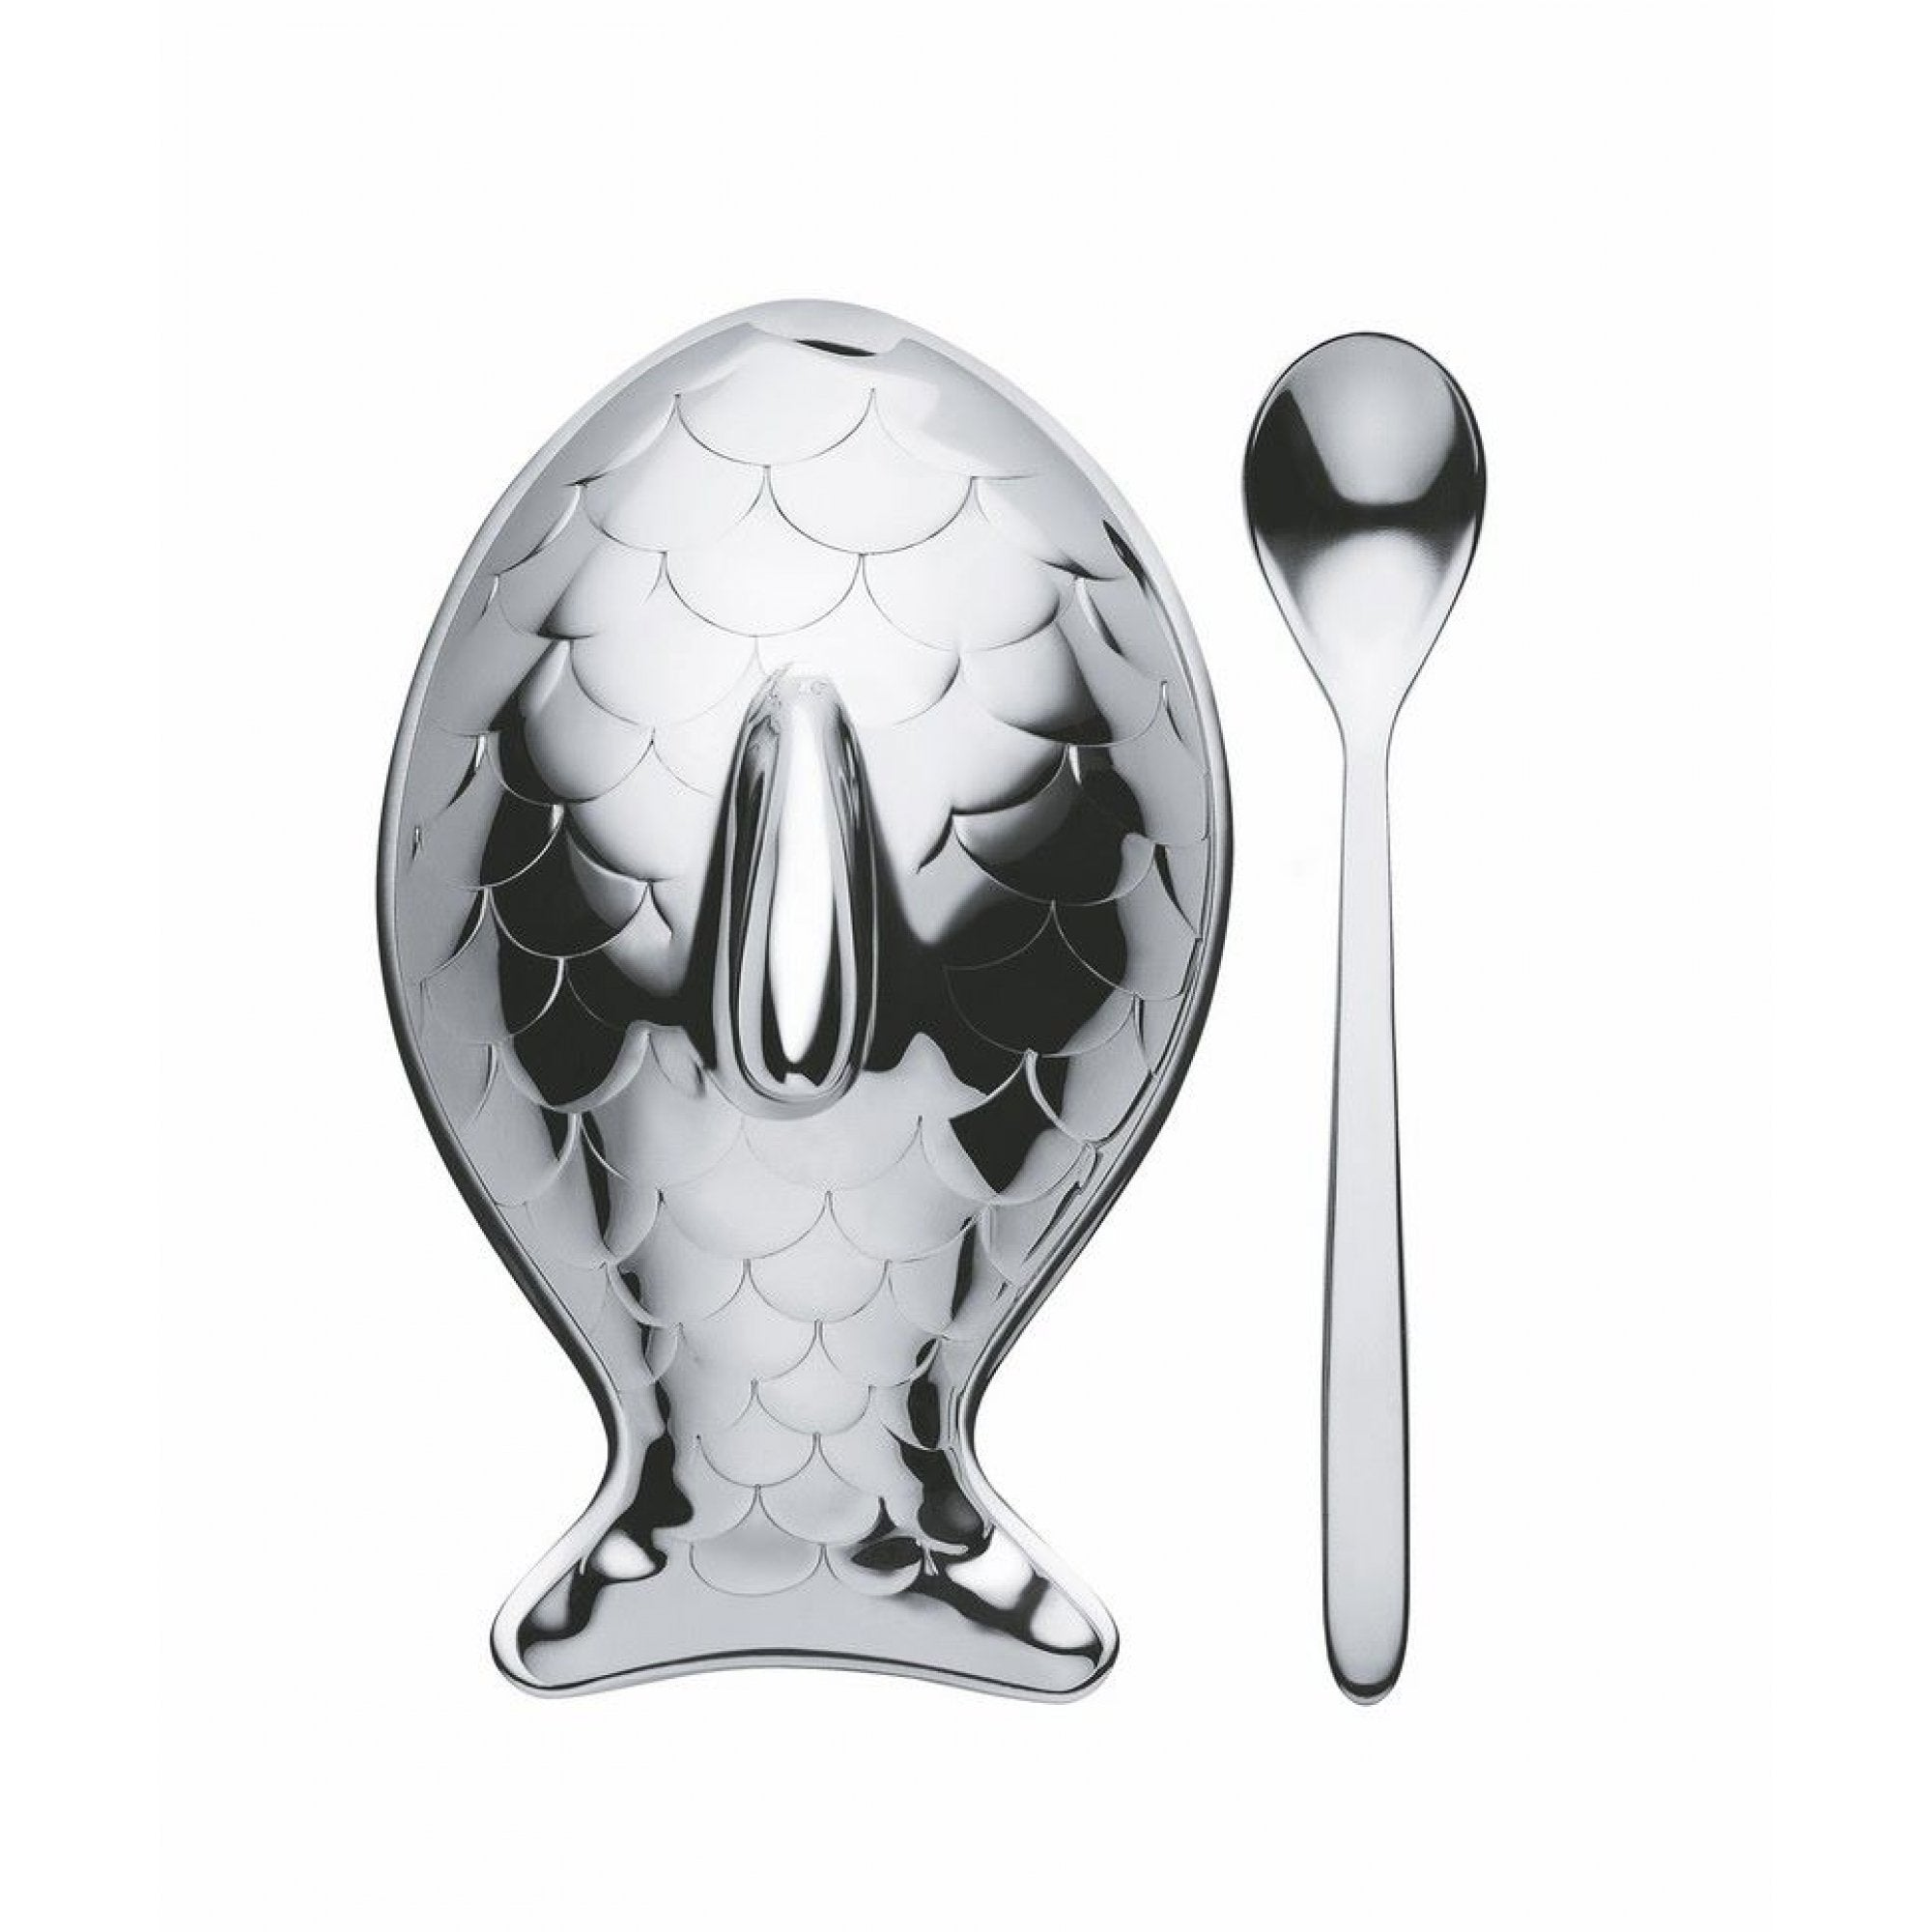 COLOMBINA SALT CELLAR